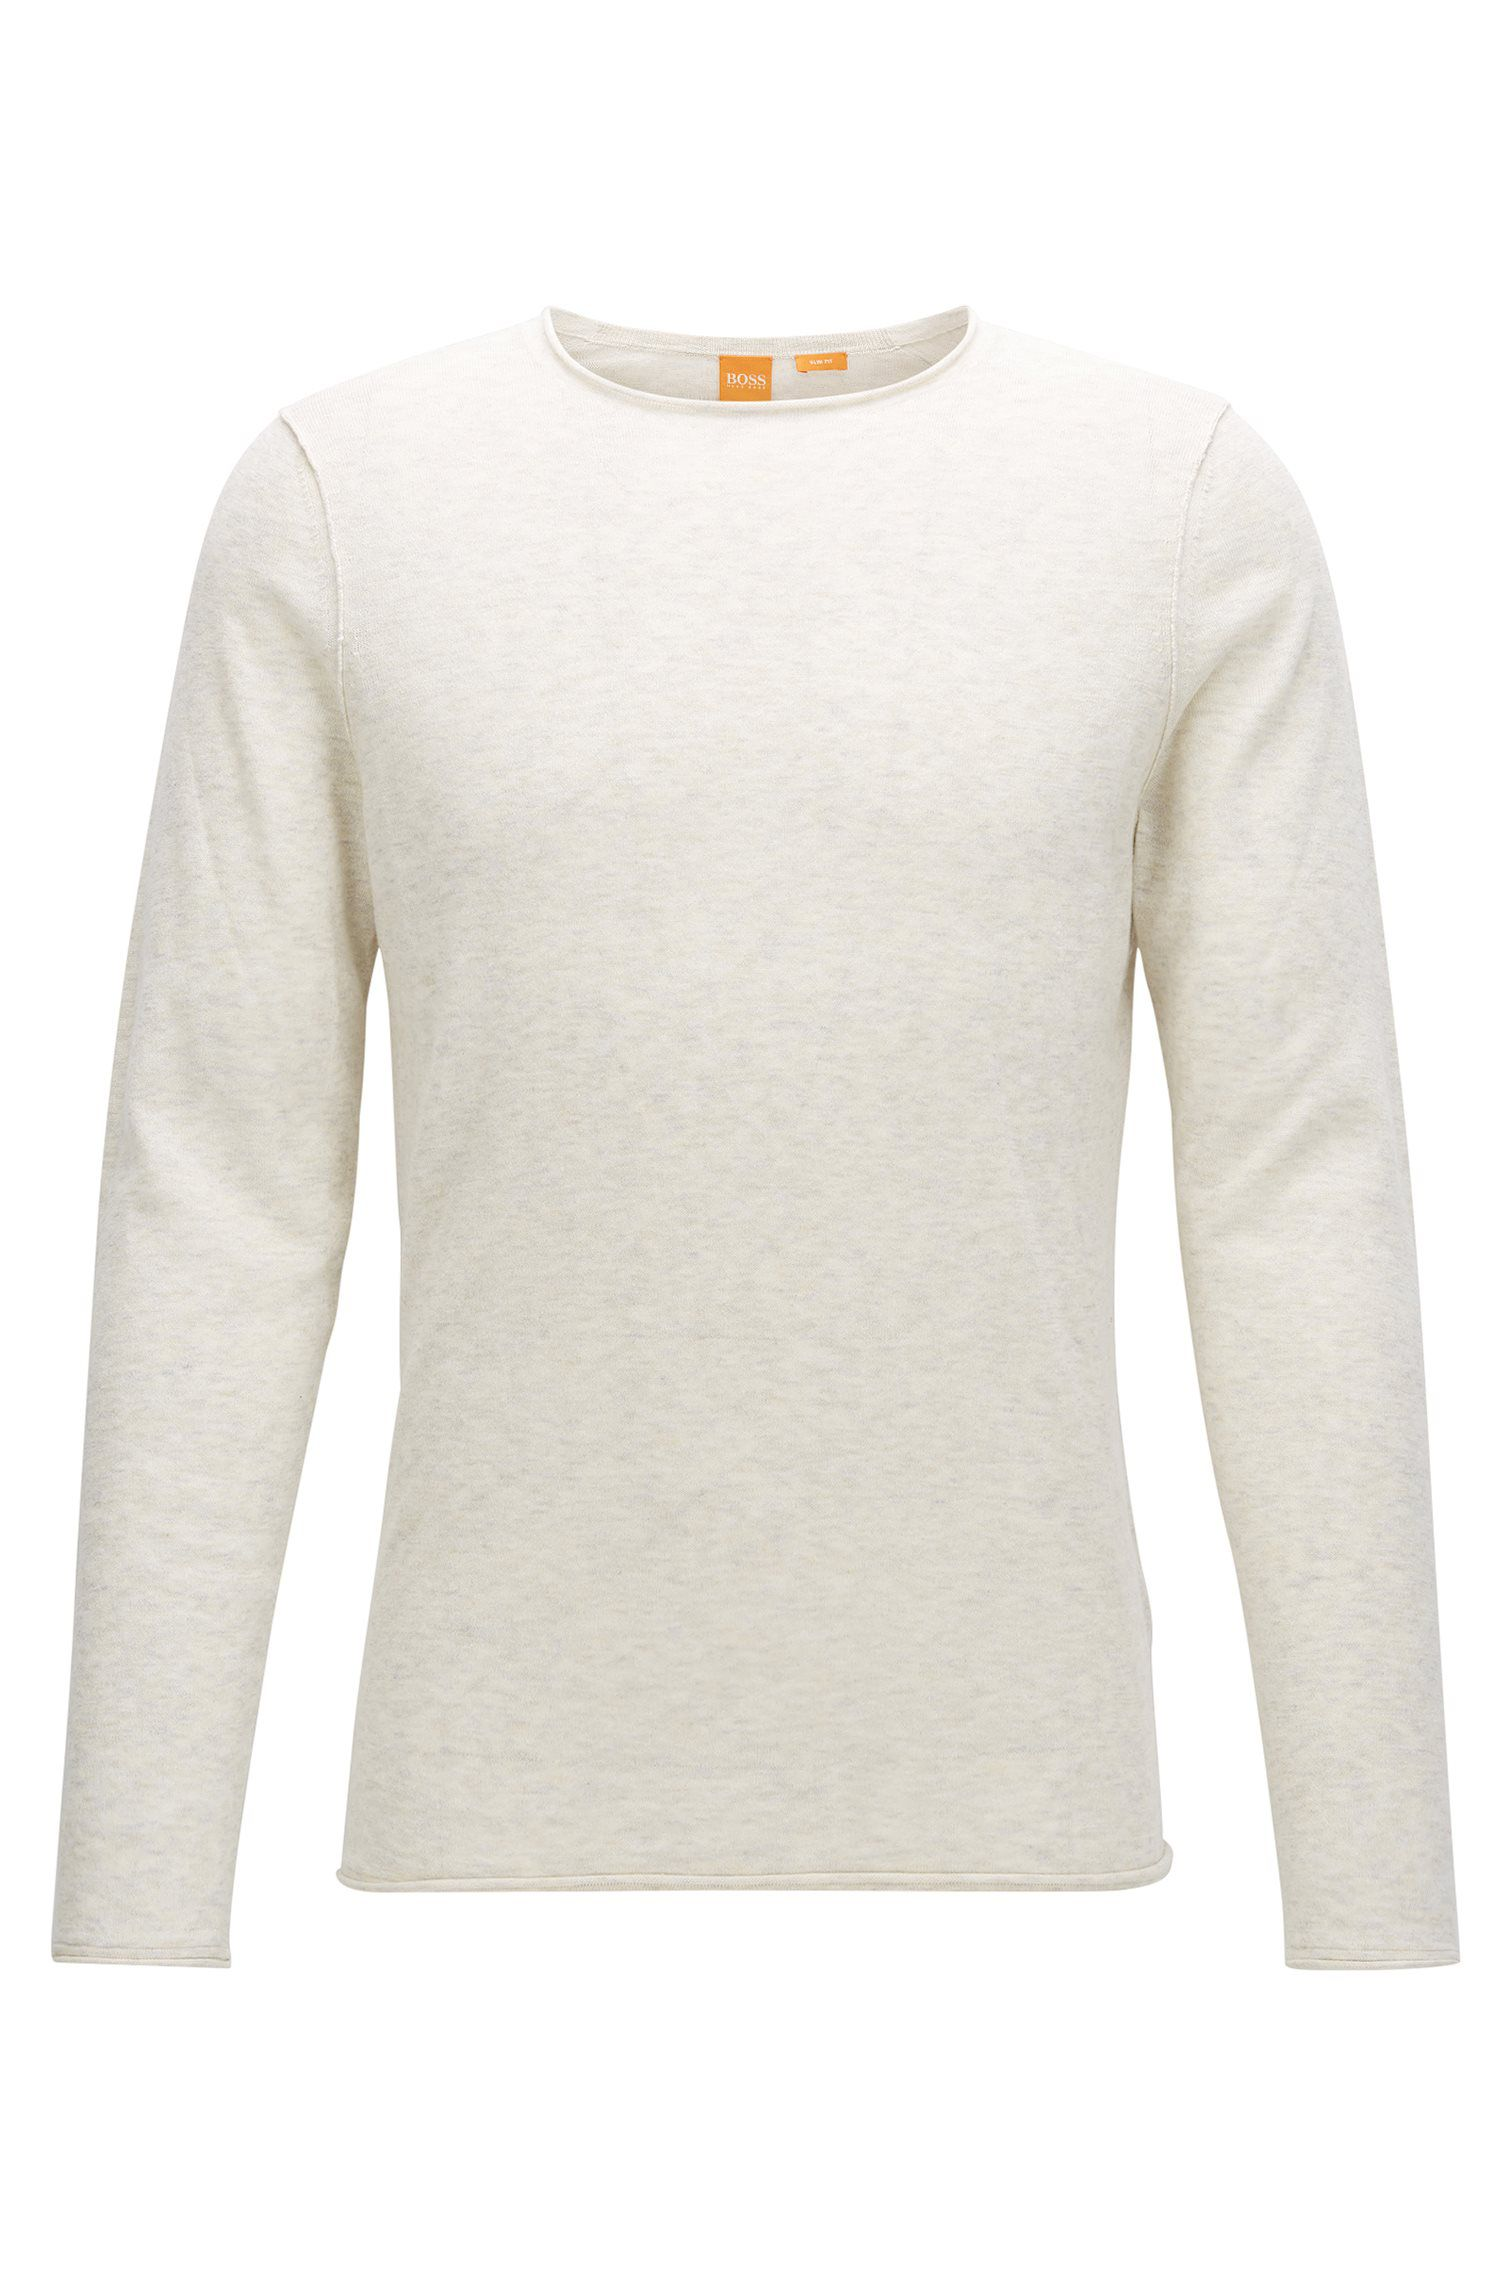 Slim-fit sweater in cashmere-effect cotton